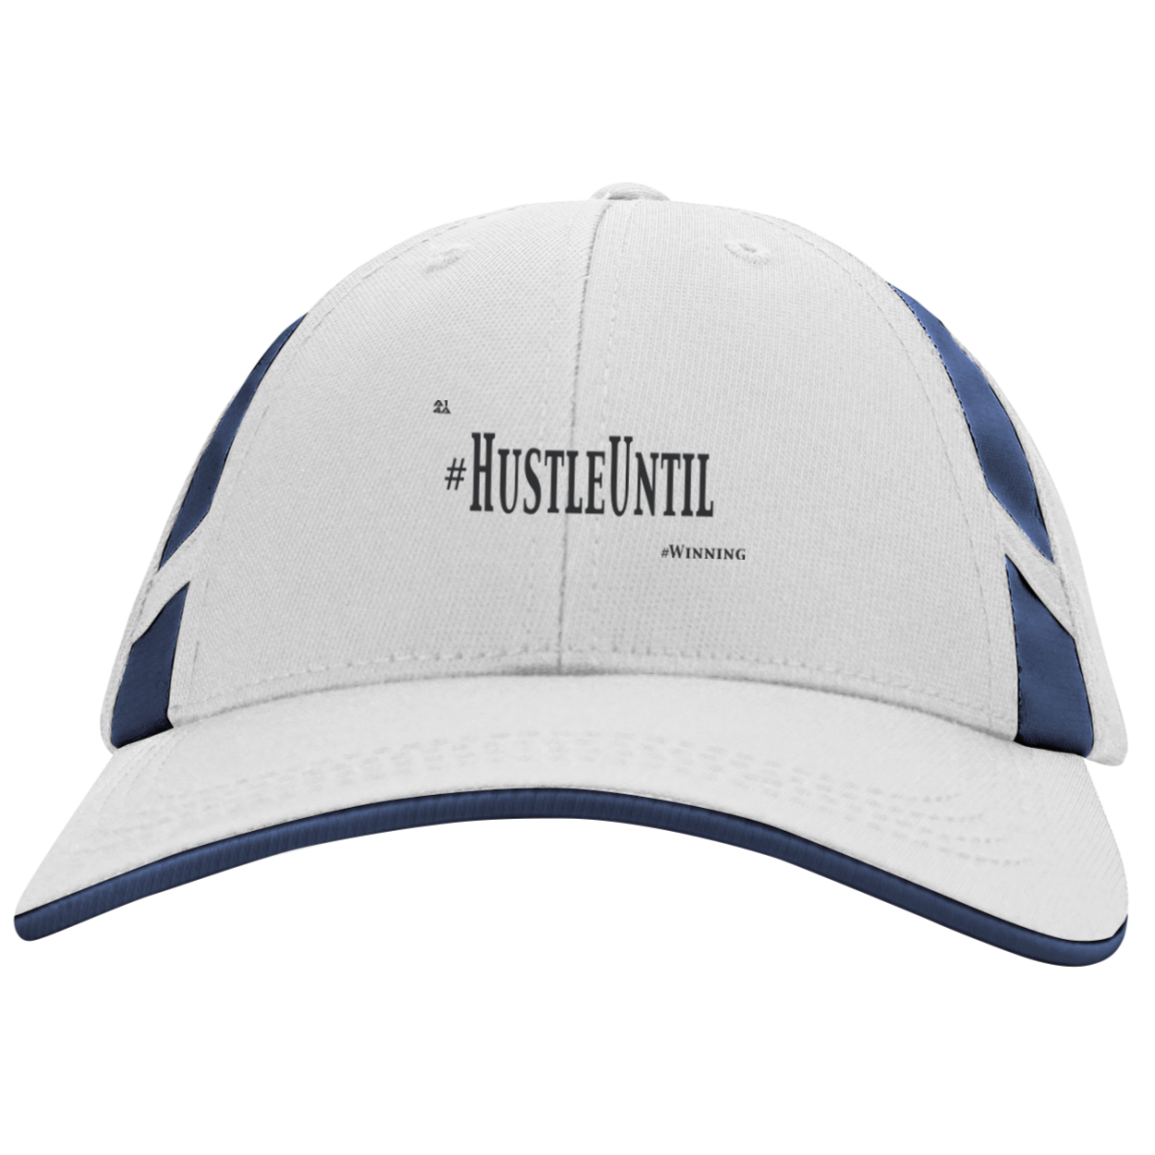 Hustle Until - Sport-Tek Dry Zone Mesh Inset Cap-Hats-And 1 For All